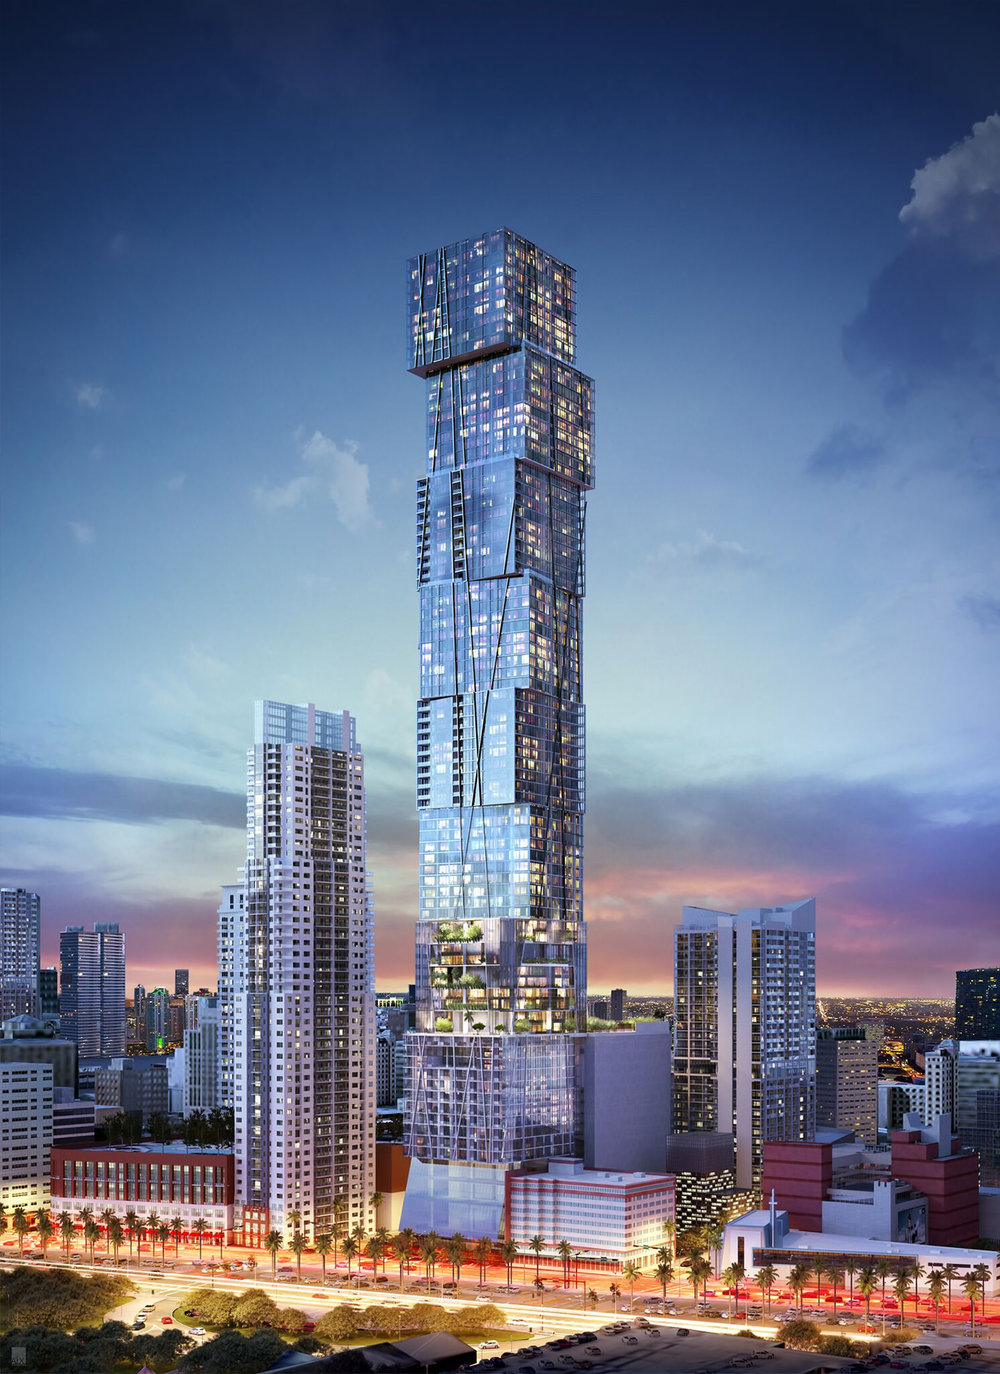 PMG To Bring Waldorf Astoria Hotel & Residences To 300 Biscayne, Set To Become Miami's Tallest Tower